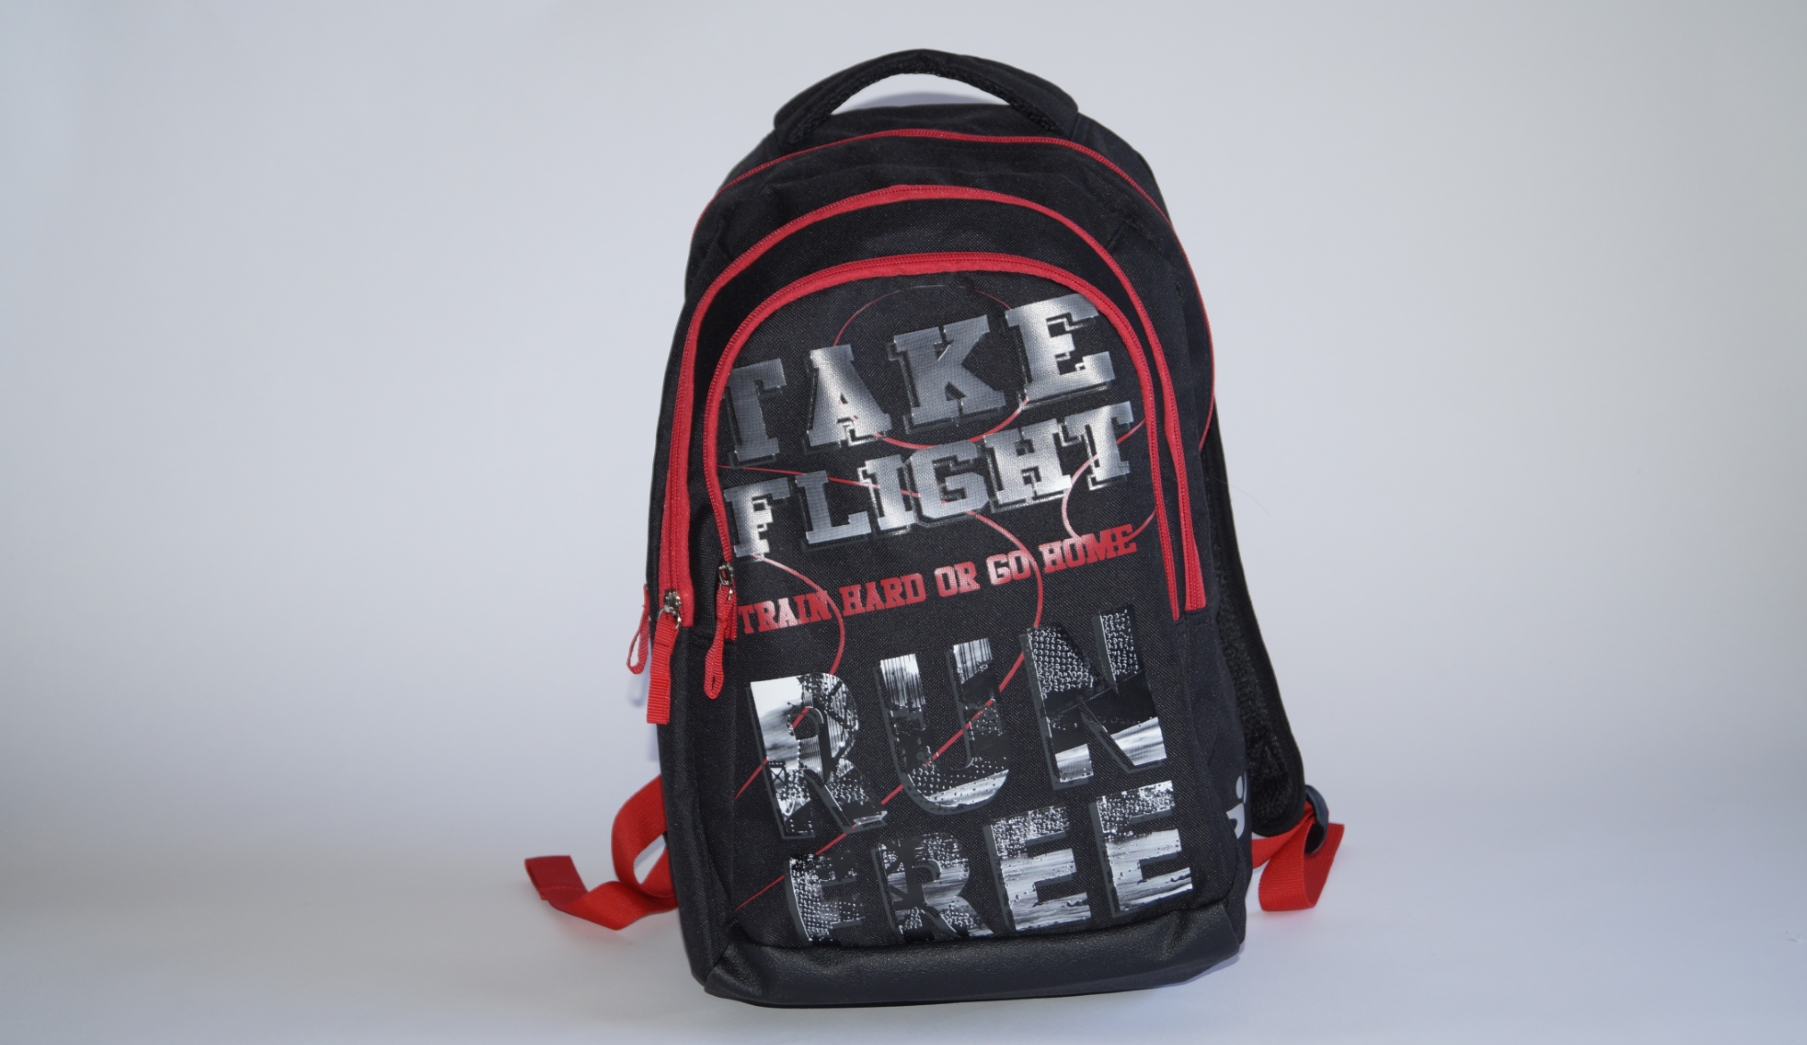 take-flight-hybrid-backpack-2.jpg